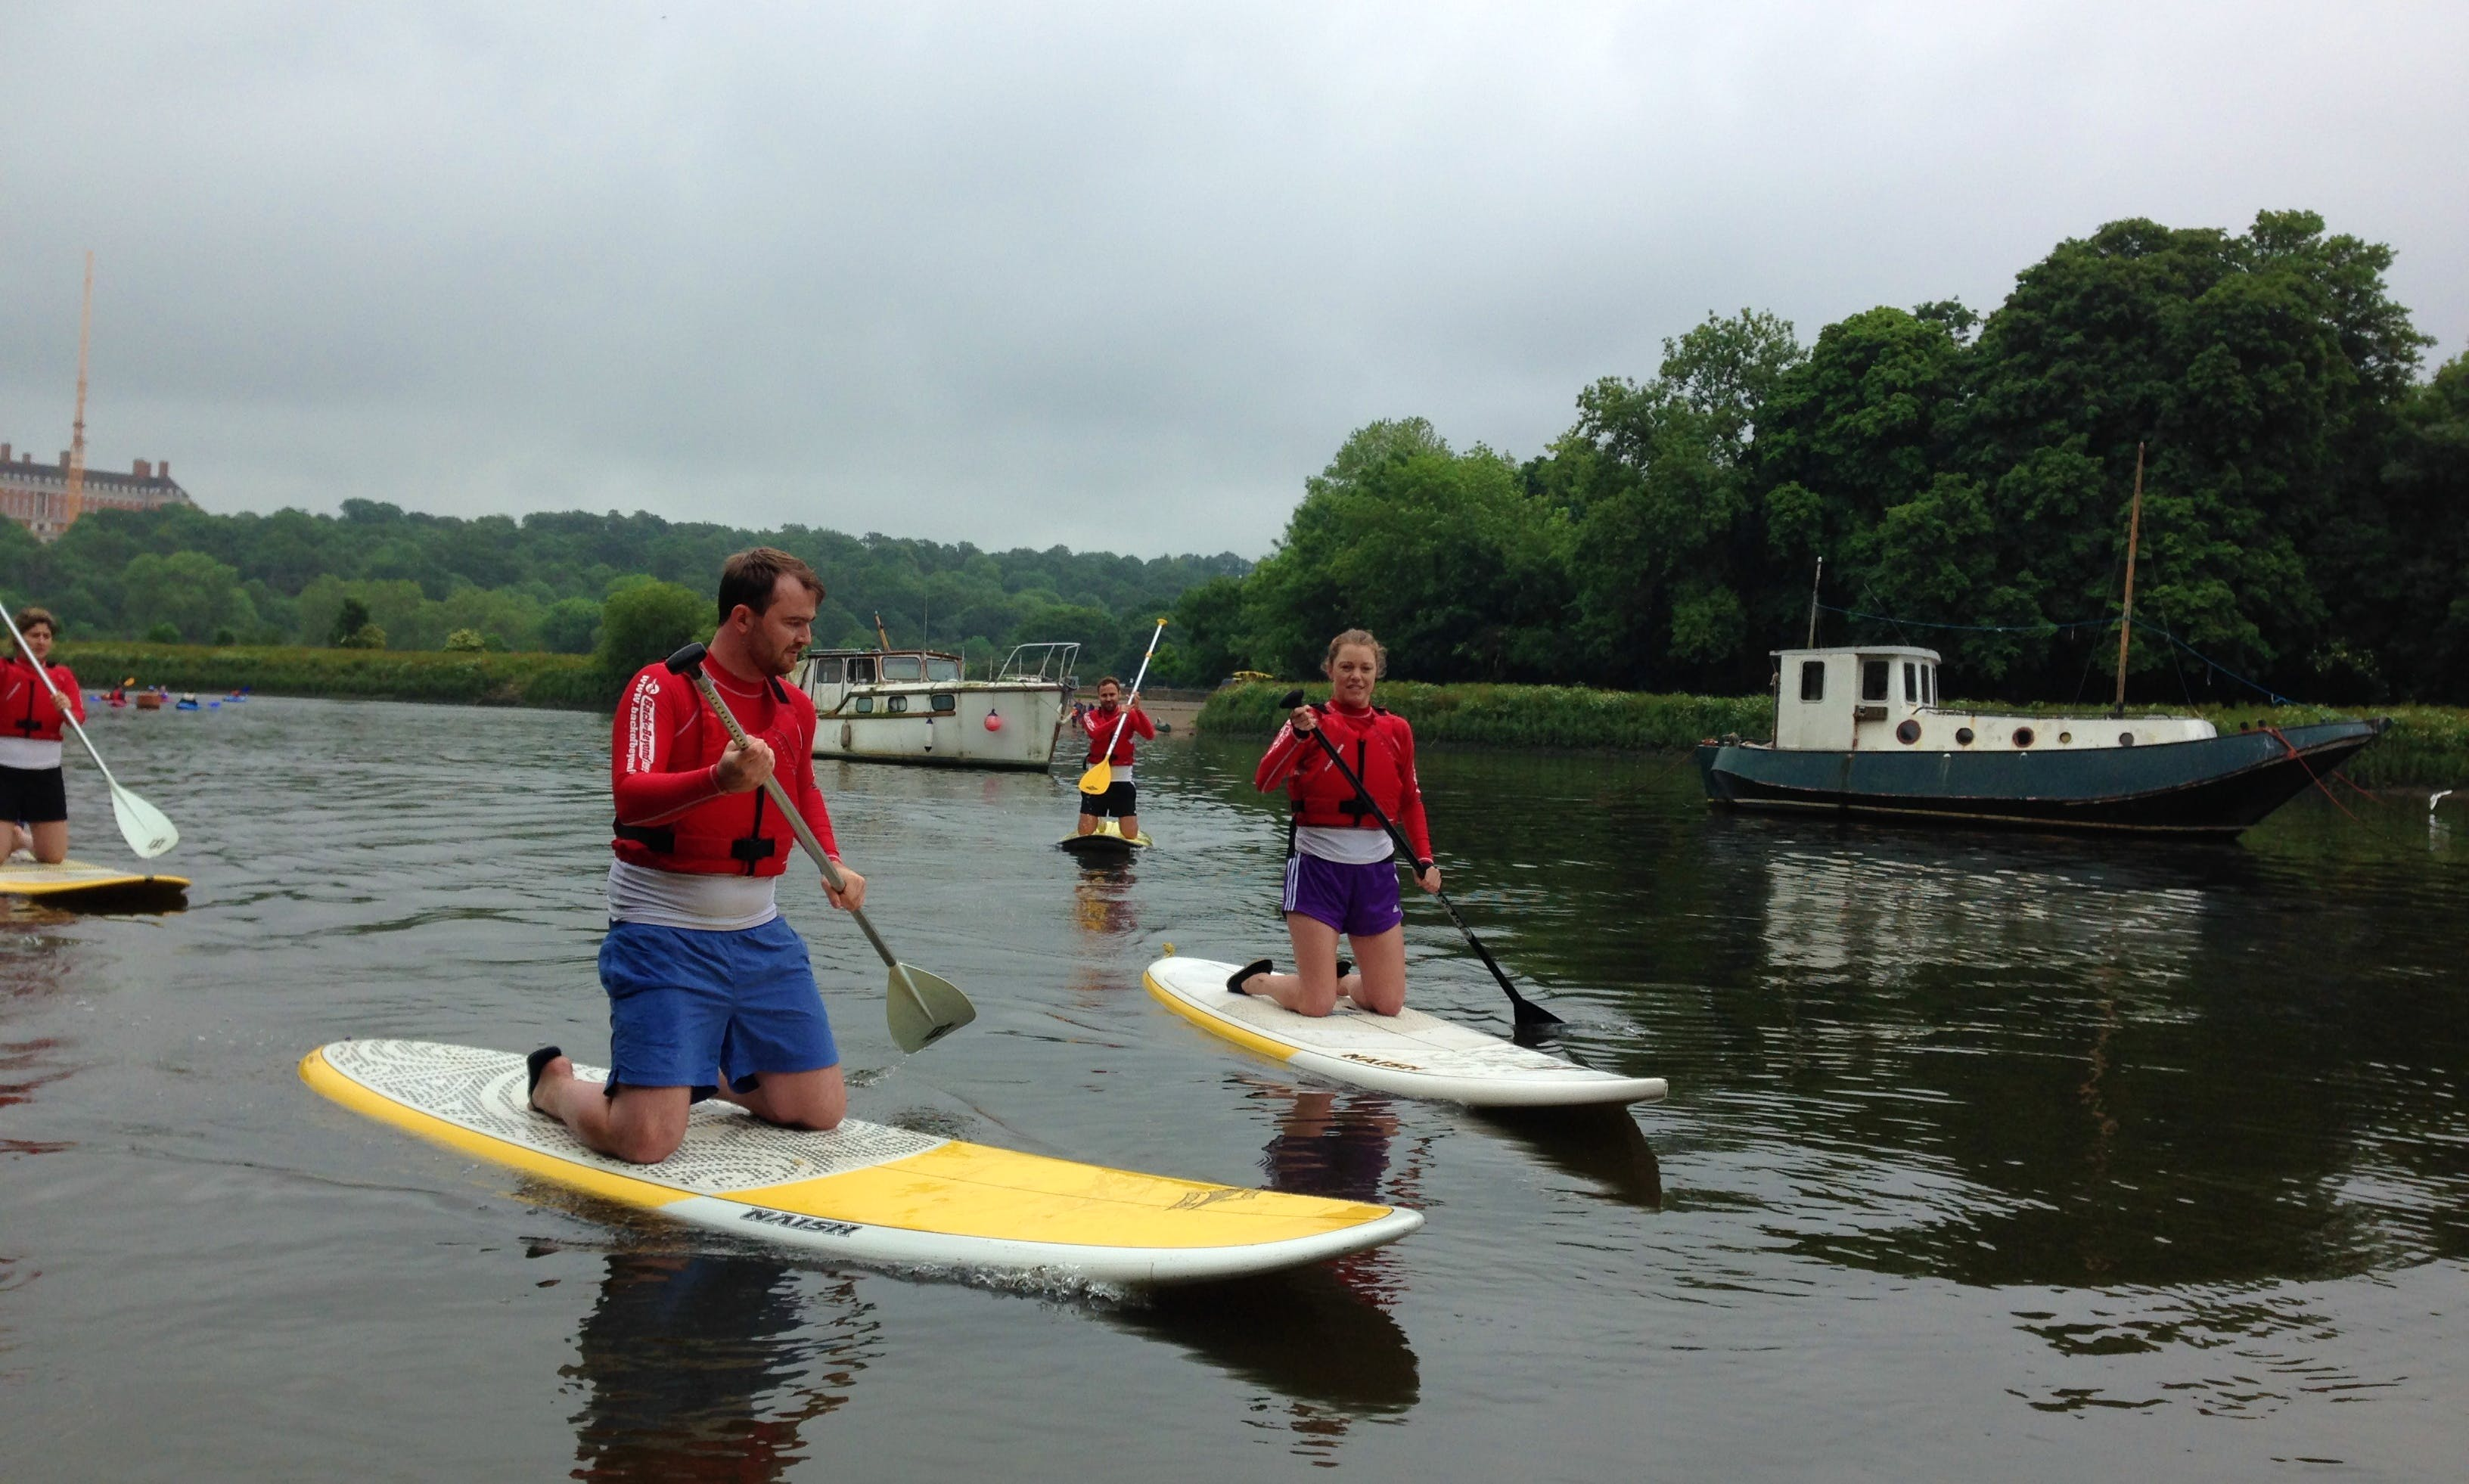 2-Hour Stand Up Paddleboard Lesson Group Session in Richmond